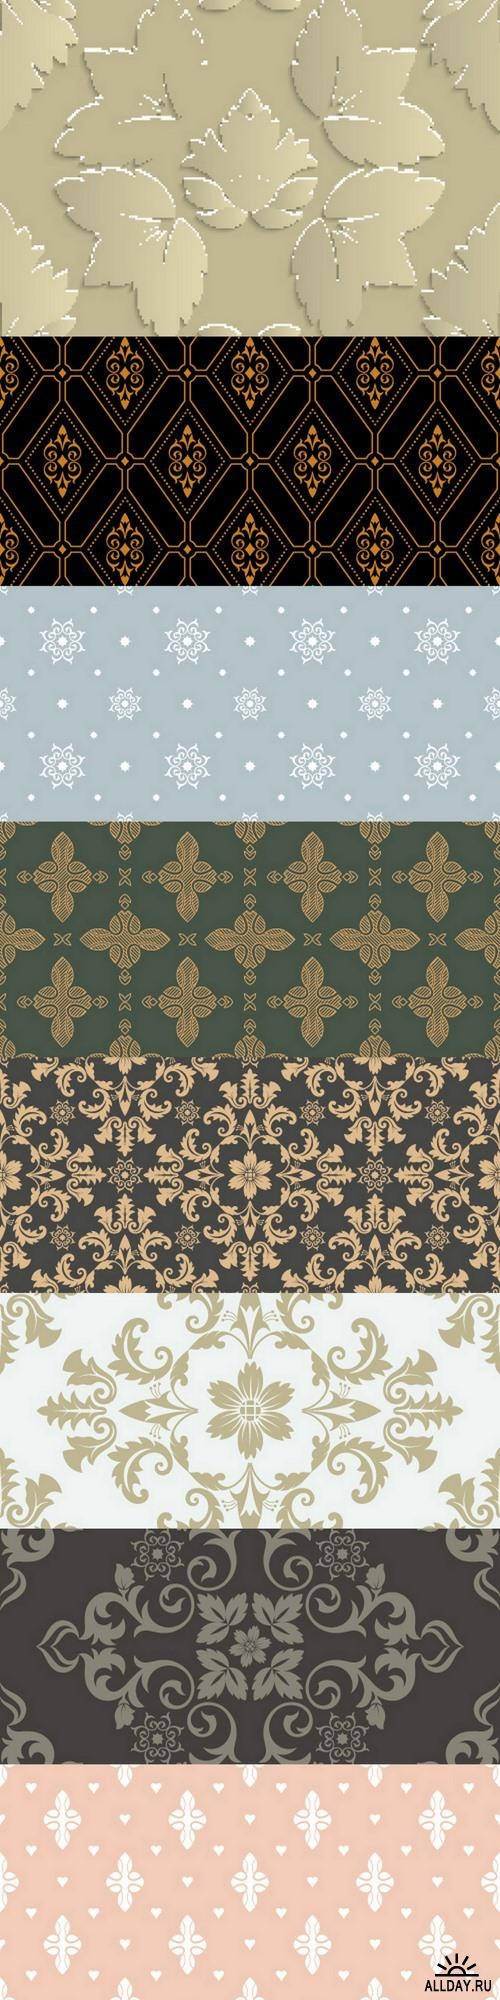 Seamless pattern ((eps (9 files)